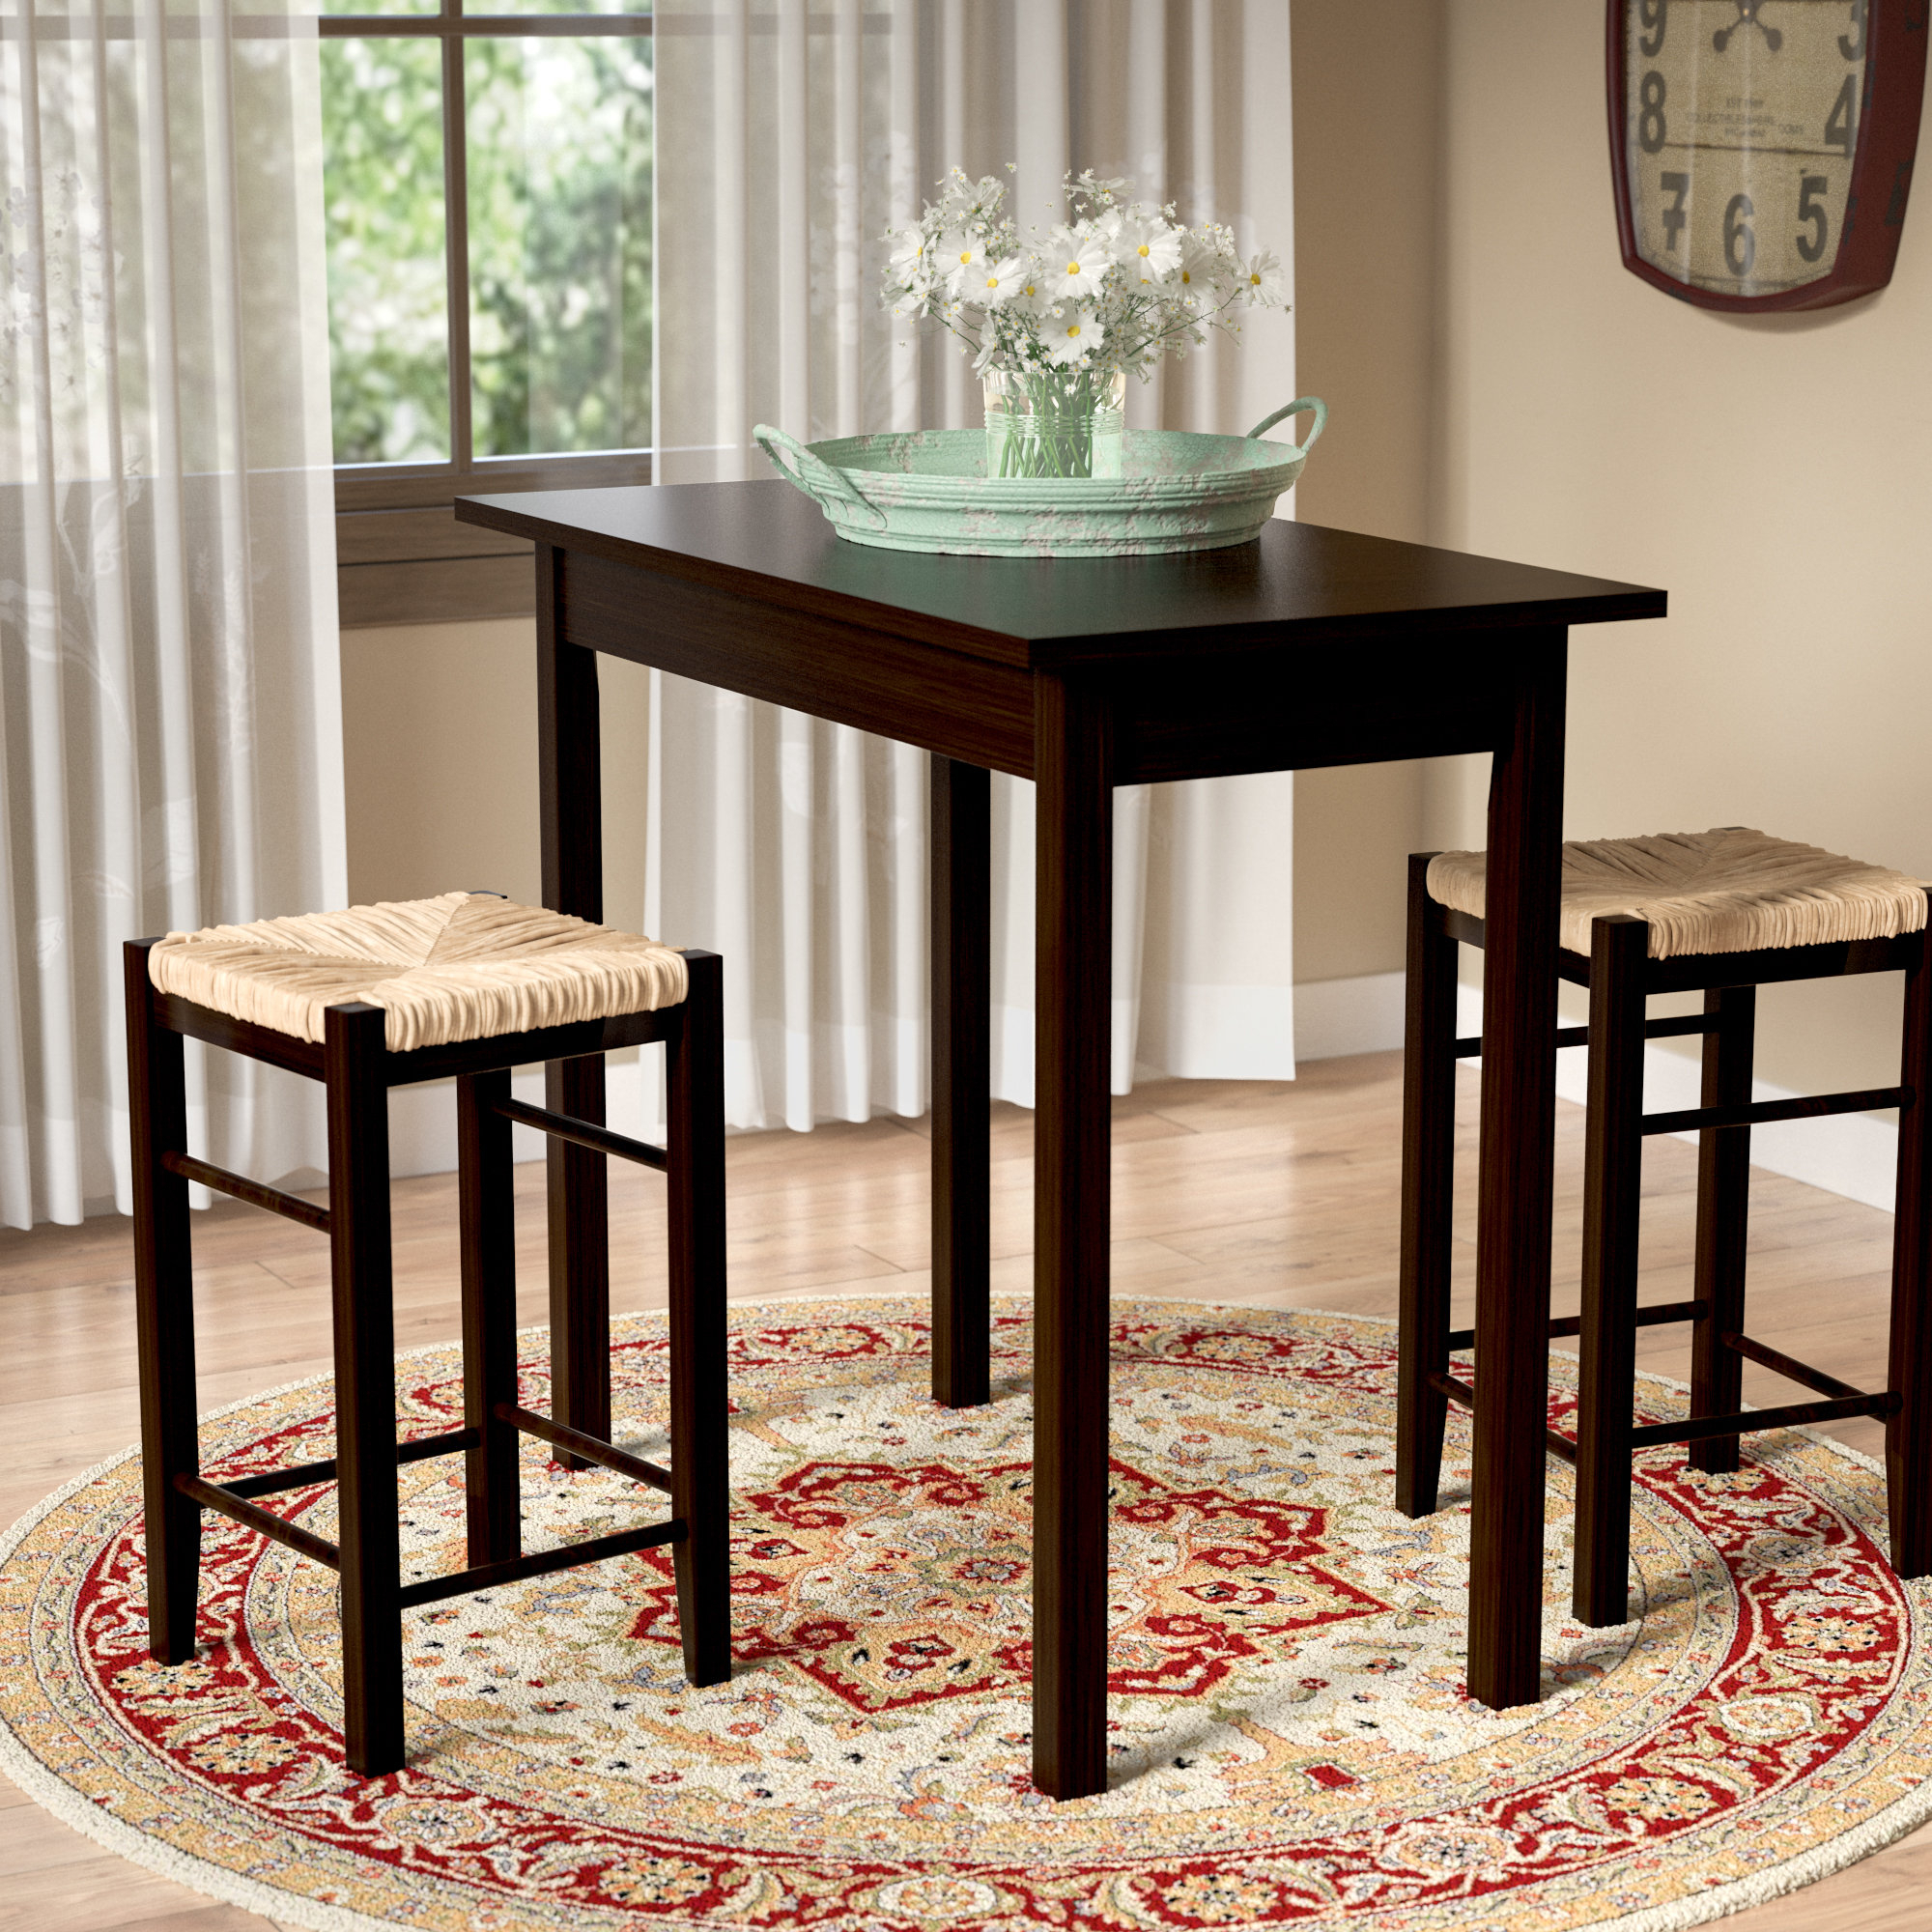 Tenney 3 Piece Counter Height Dining Set Intended For Most Up To Date Nutter 3 Piece Dining Sets (Image 18 of 20)